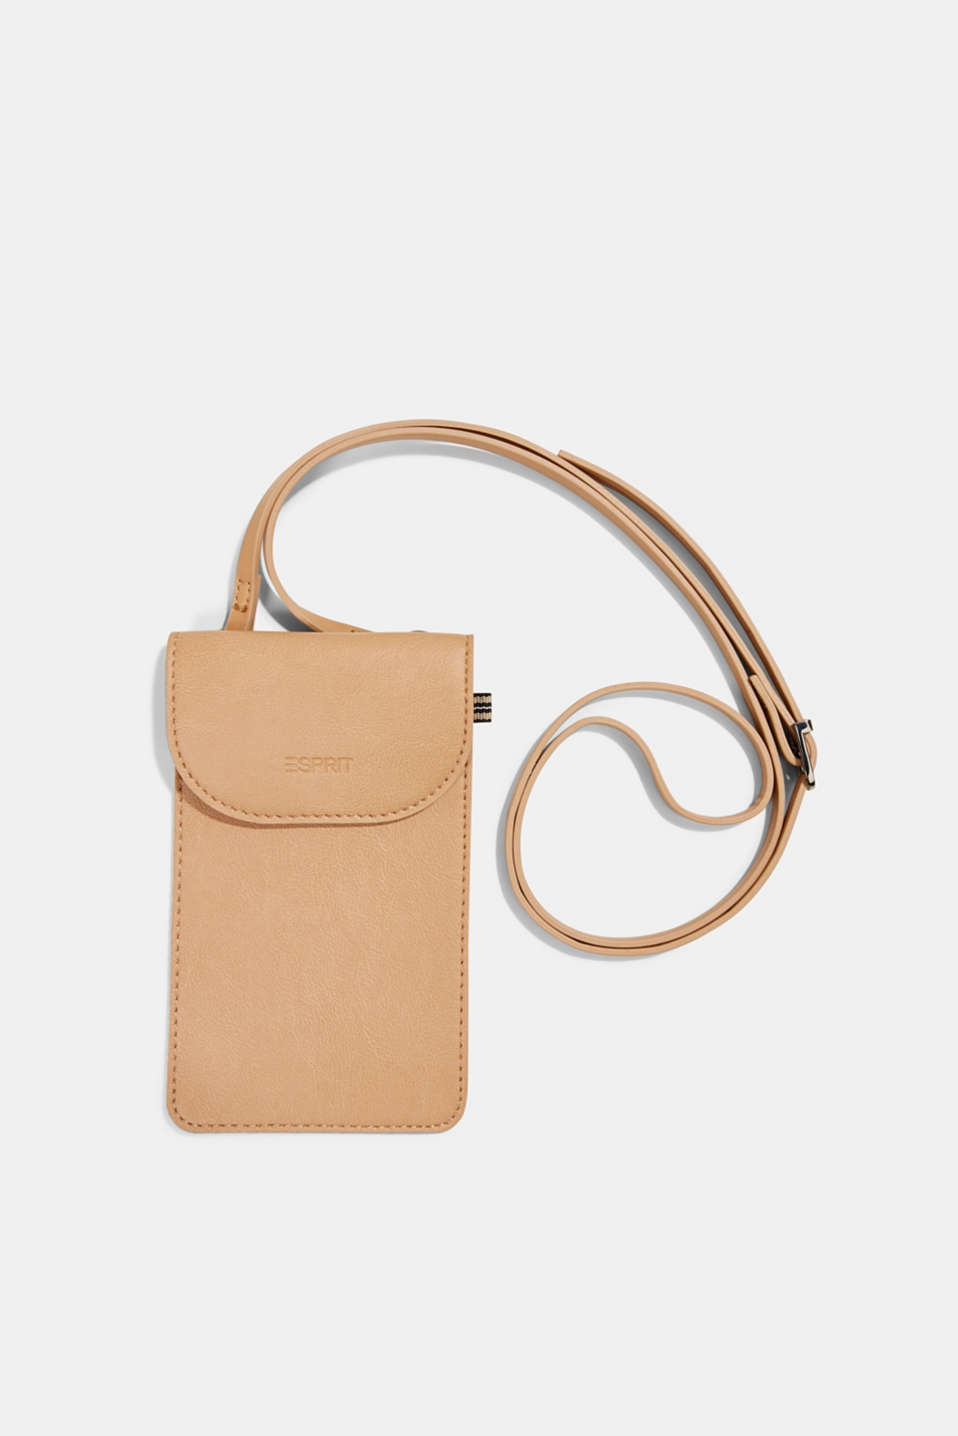 Esprit - Vegan: faux leather phone bag